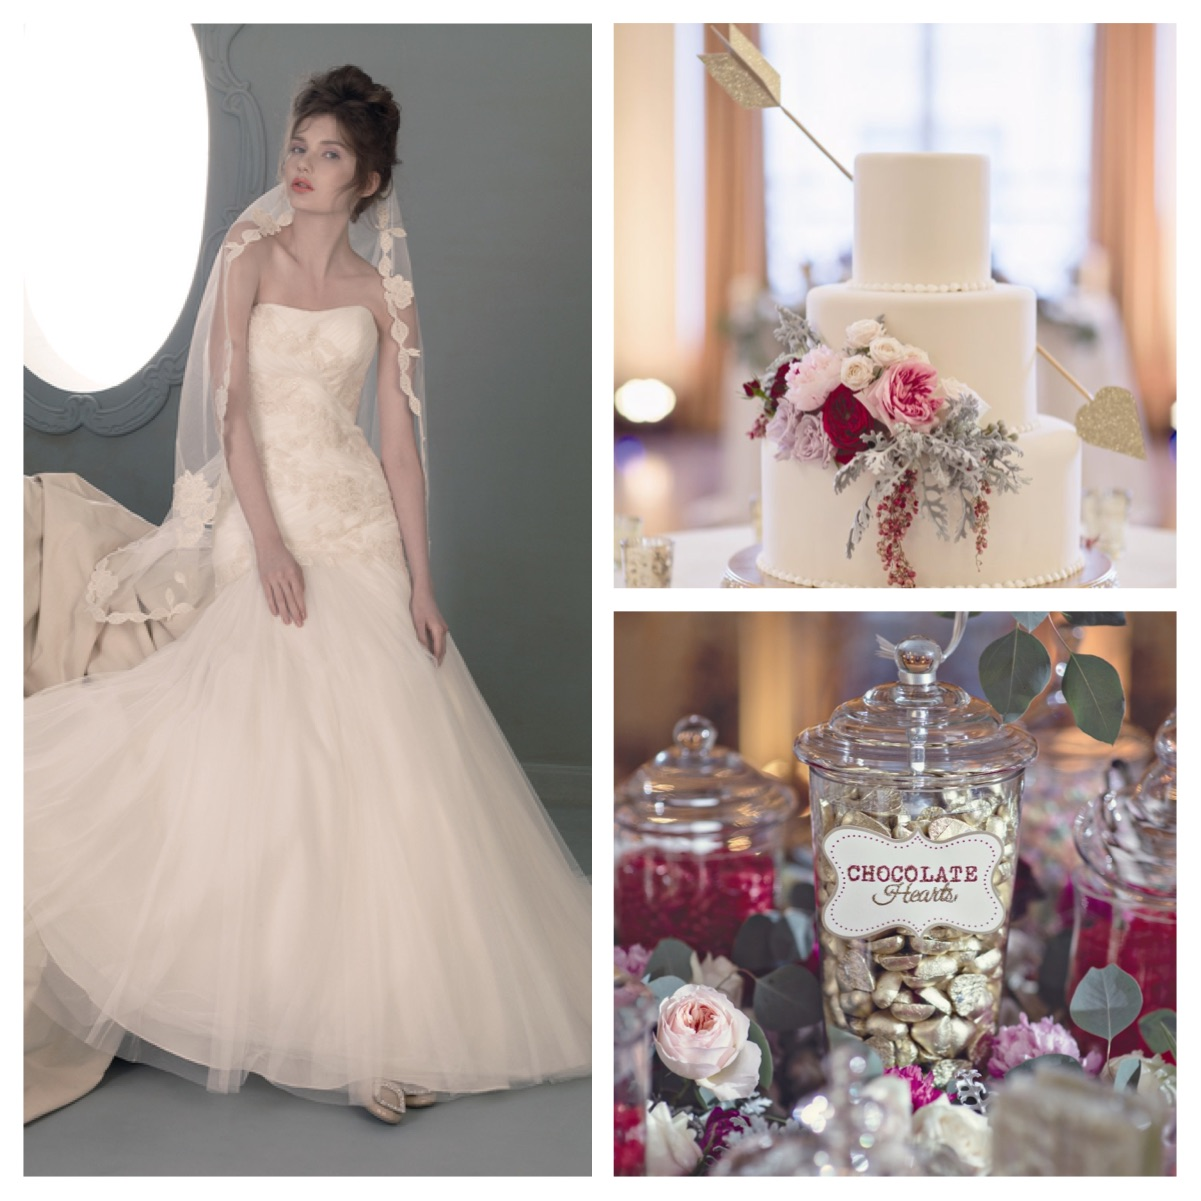 Dress:  St. Pucchi 708 ,  Cake and Chocolate Hearts